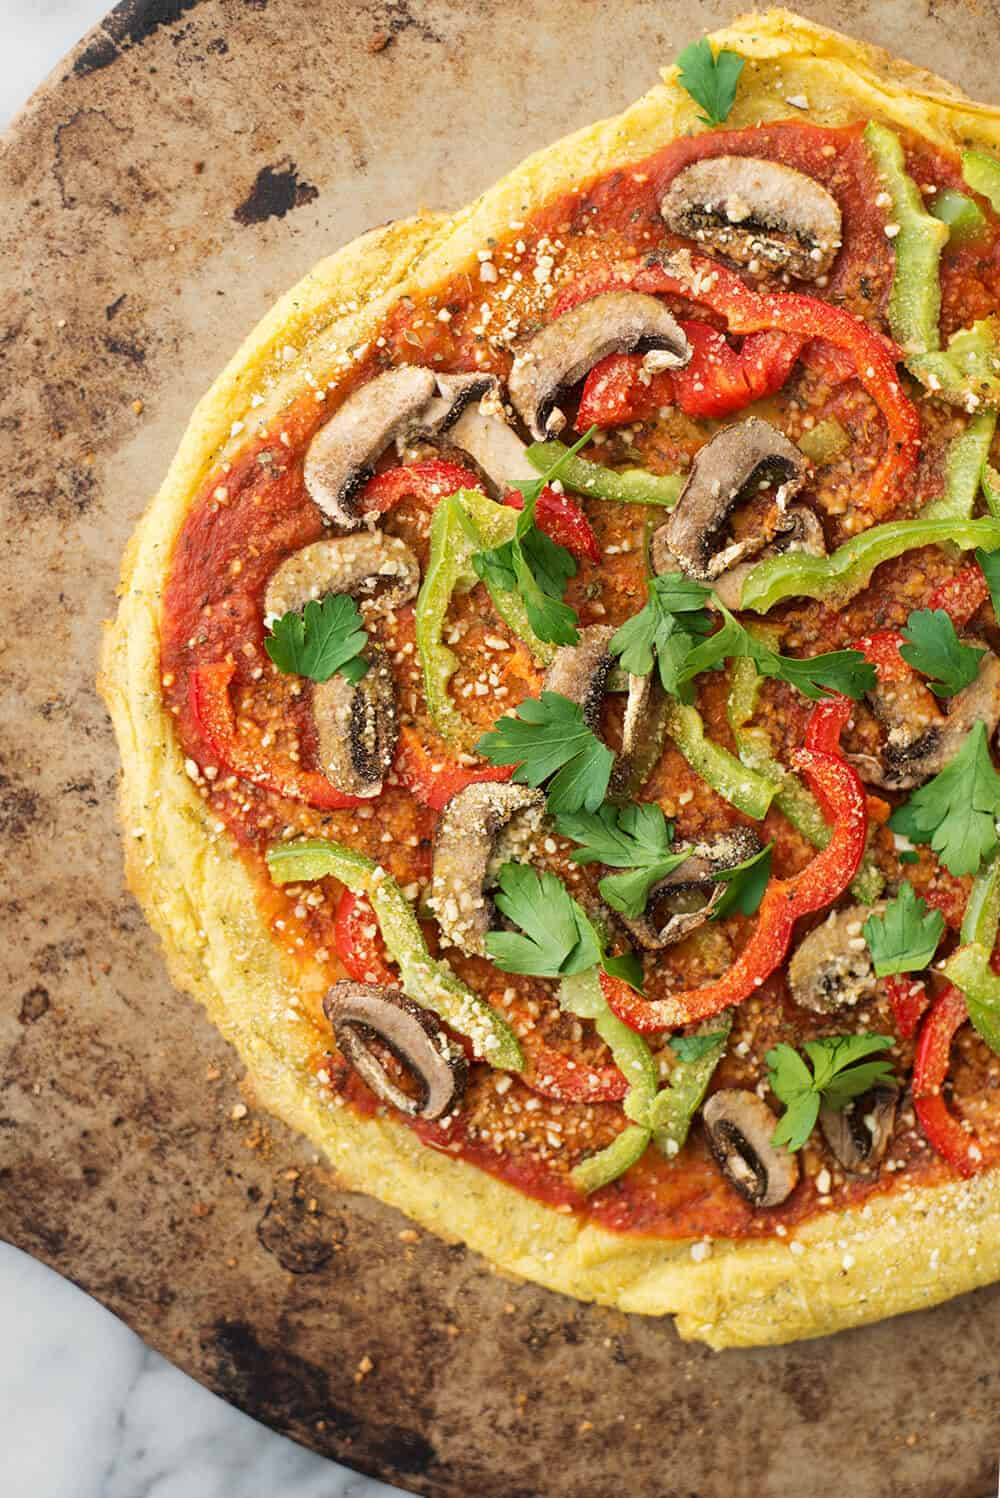 Polenta Pizza! You've got try this unusual twist on pizza. Polenta pizza crust topped with sauce, vegetables and vegan parmesan cheese.| www.delishknowledge.com